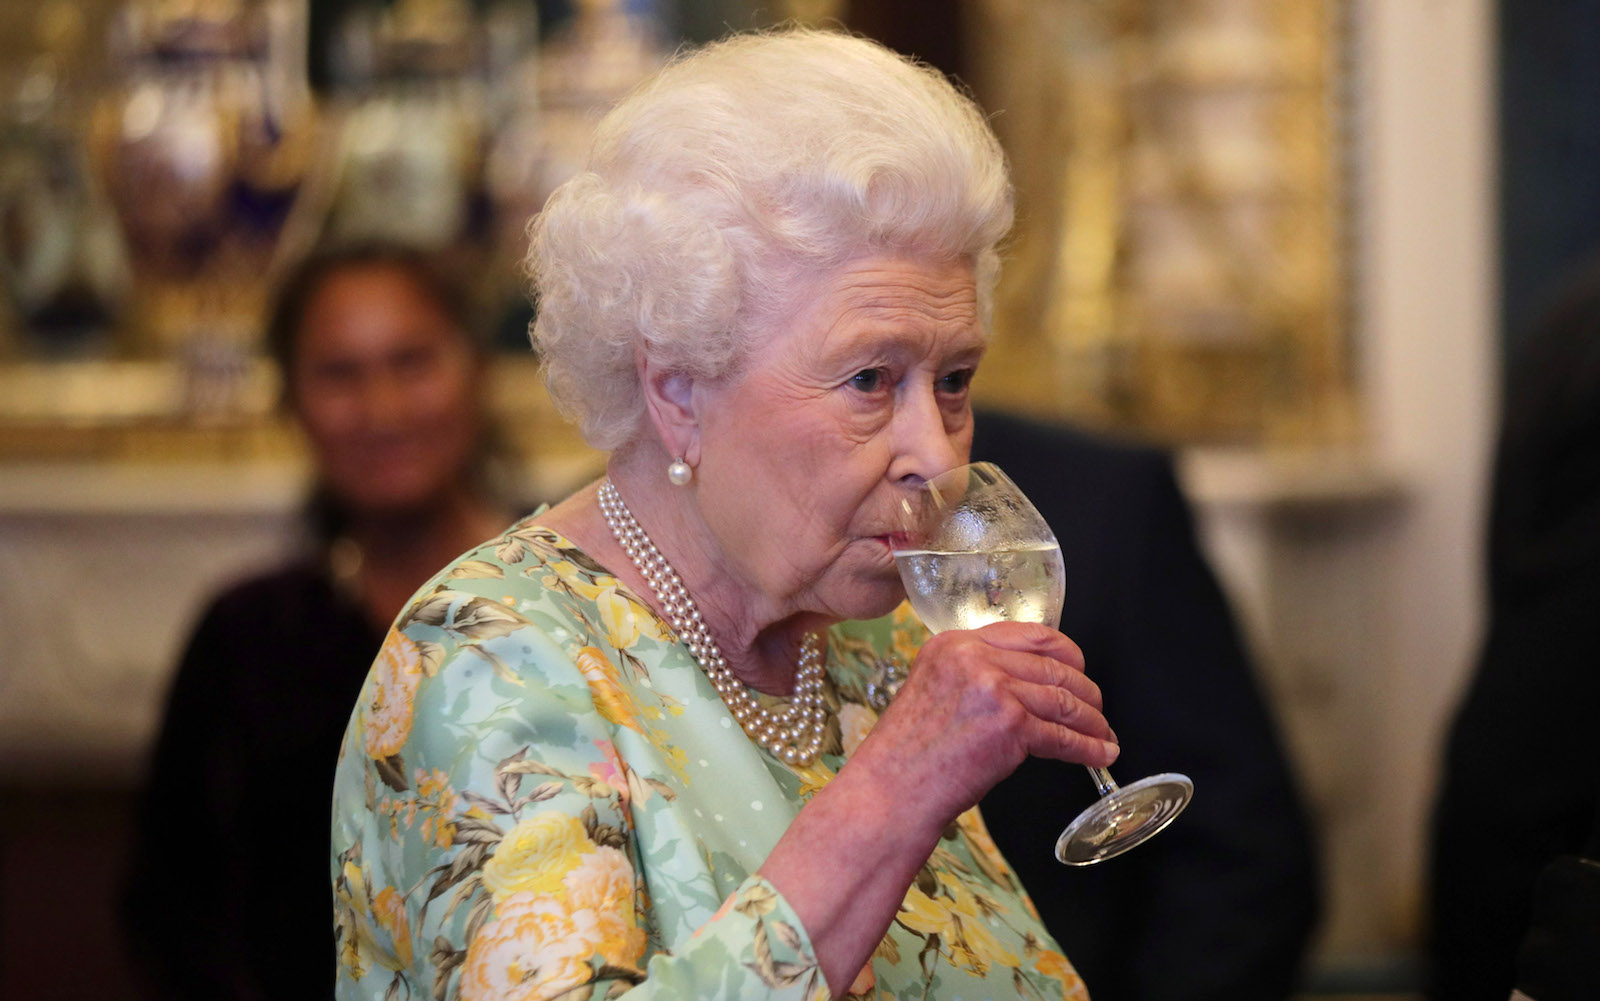 The Queen Can't Get Enough of This Dish, According to a New Documentary